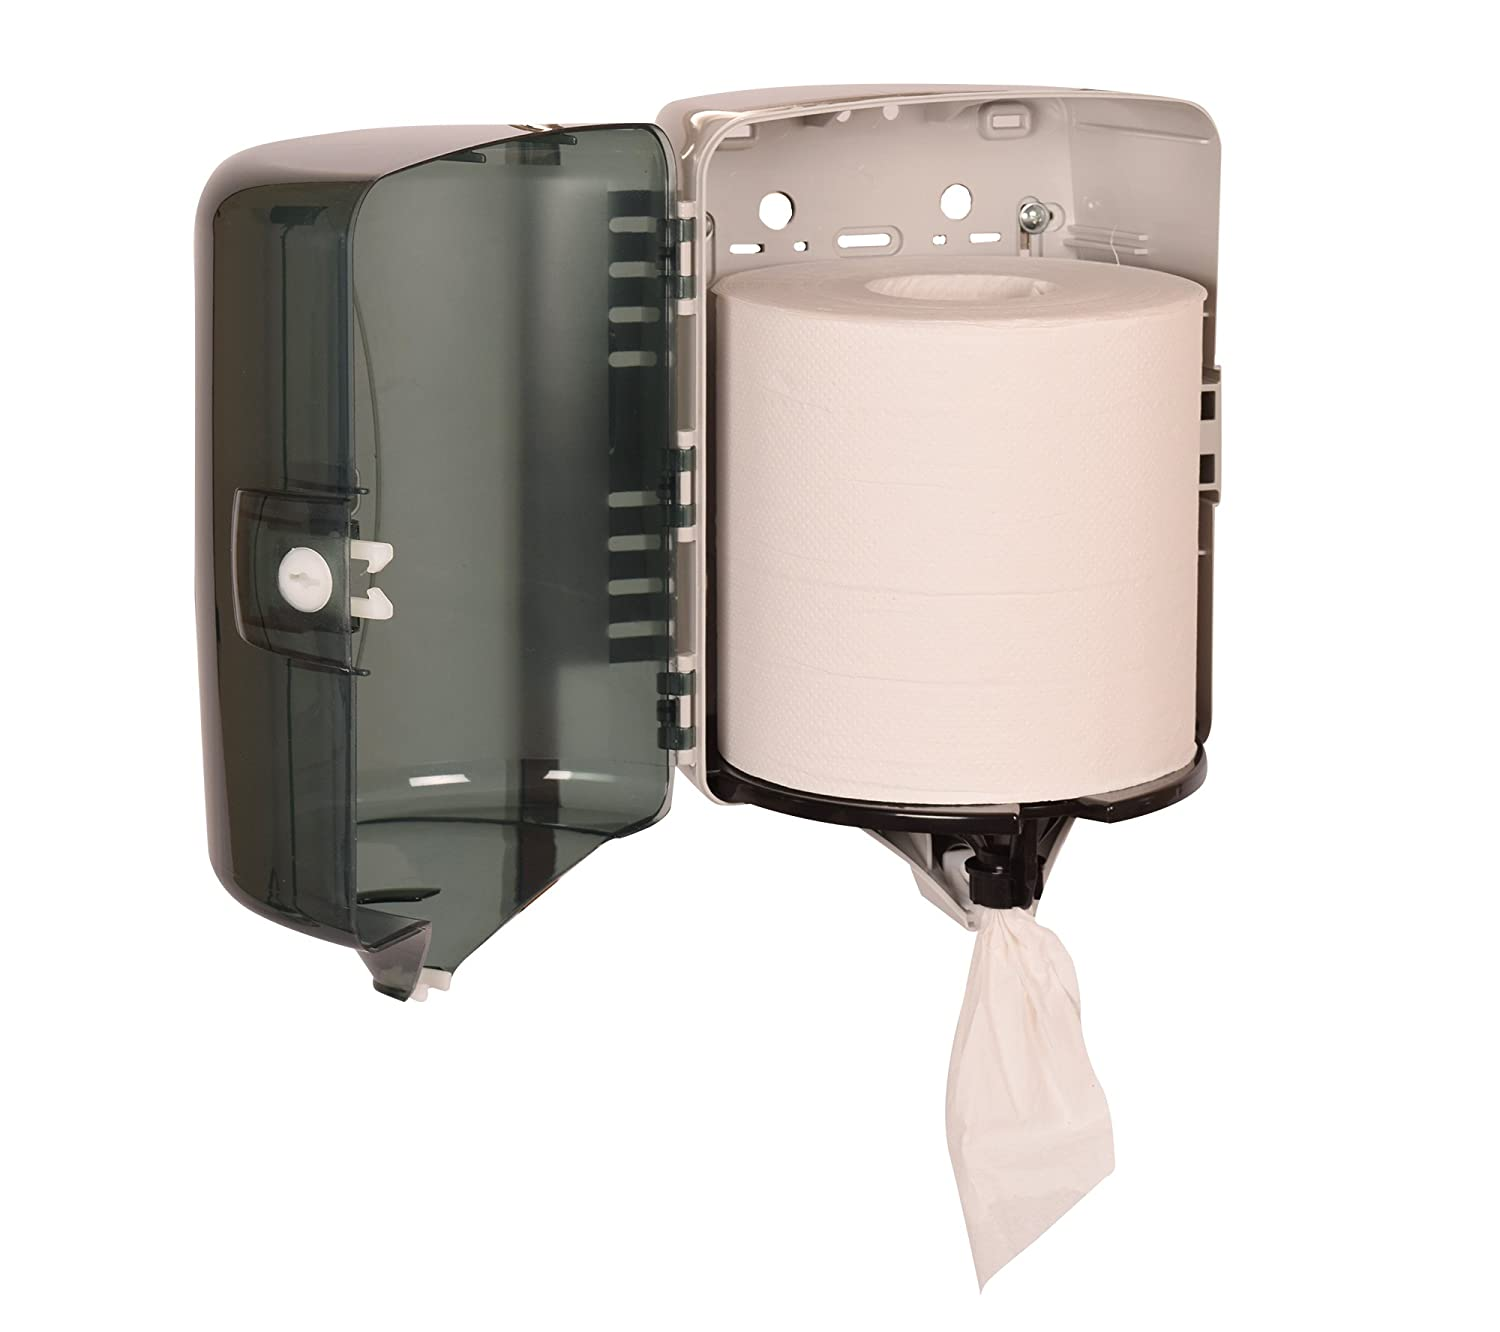 Tork 93T Centerfeed Hand Towel Dispenser, Plastic, 12.75